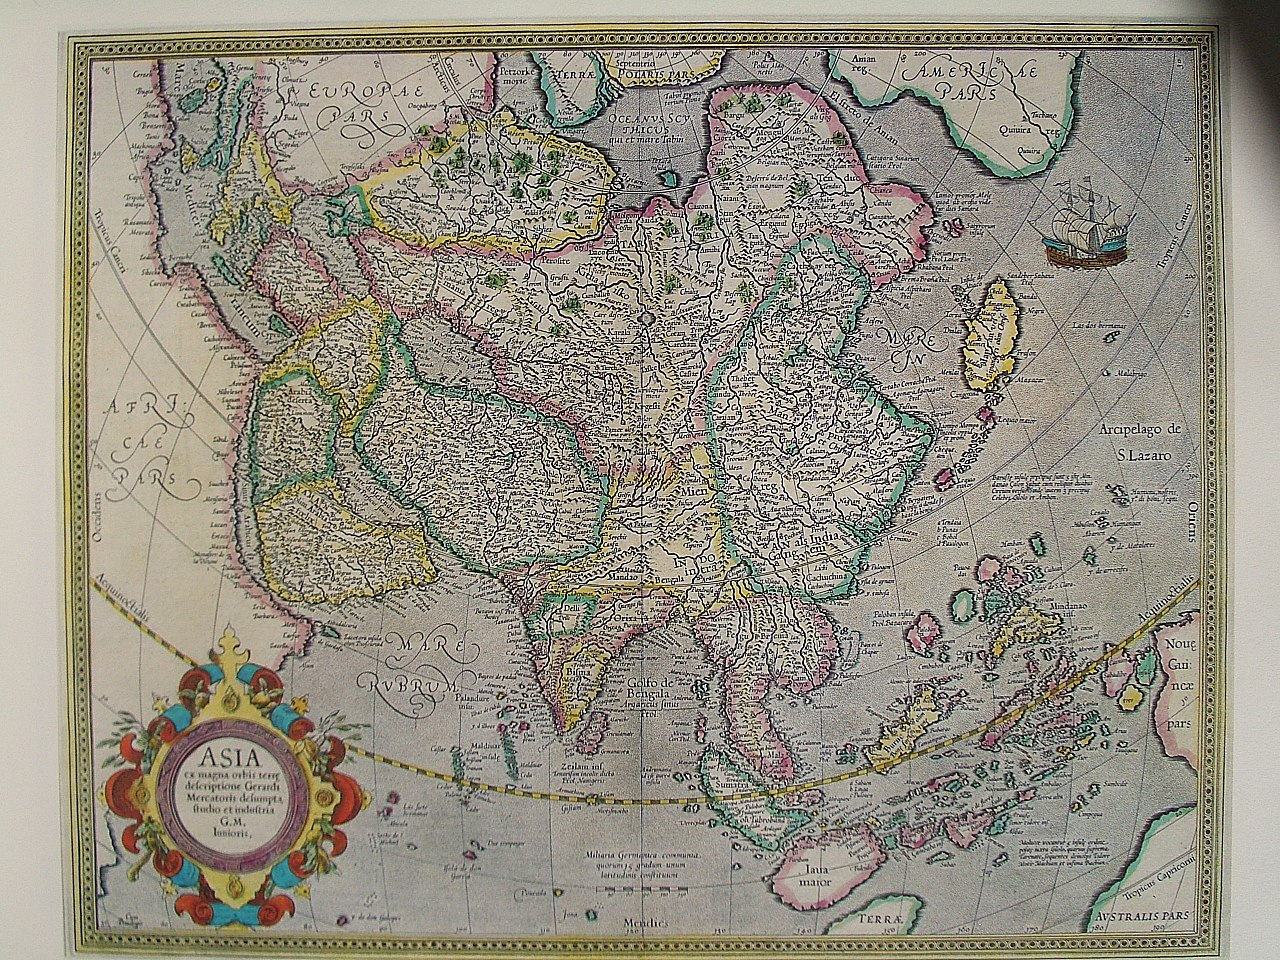 File:CEM-15-Asia-Mercator-1595-2531.jpg - Wikimedia Commons on map of china, map of africa, is pakistan in asia, monsoon asia, map of mexico, map of south america, best beaches in asia, southeast asia, physical map asia, map europe, map africa, countries in asia, south asia, map of france, georgia in asia, map of italy, blank map asia, city in asia, map of australia, philippines asia, map of europe, map of north carolina, deserts in asia, map of usa, mountain ranges in asia, map of texas, india in asia, east asia, map of florida, map of germany, map of canada, map america, map australia, map of us, map of georgia, map of the world, google maps asia, map of ohio,